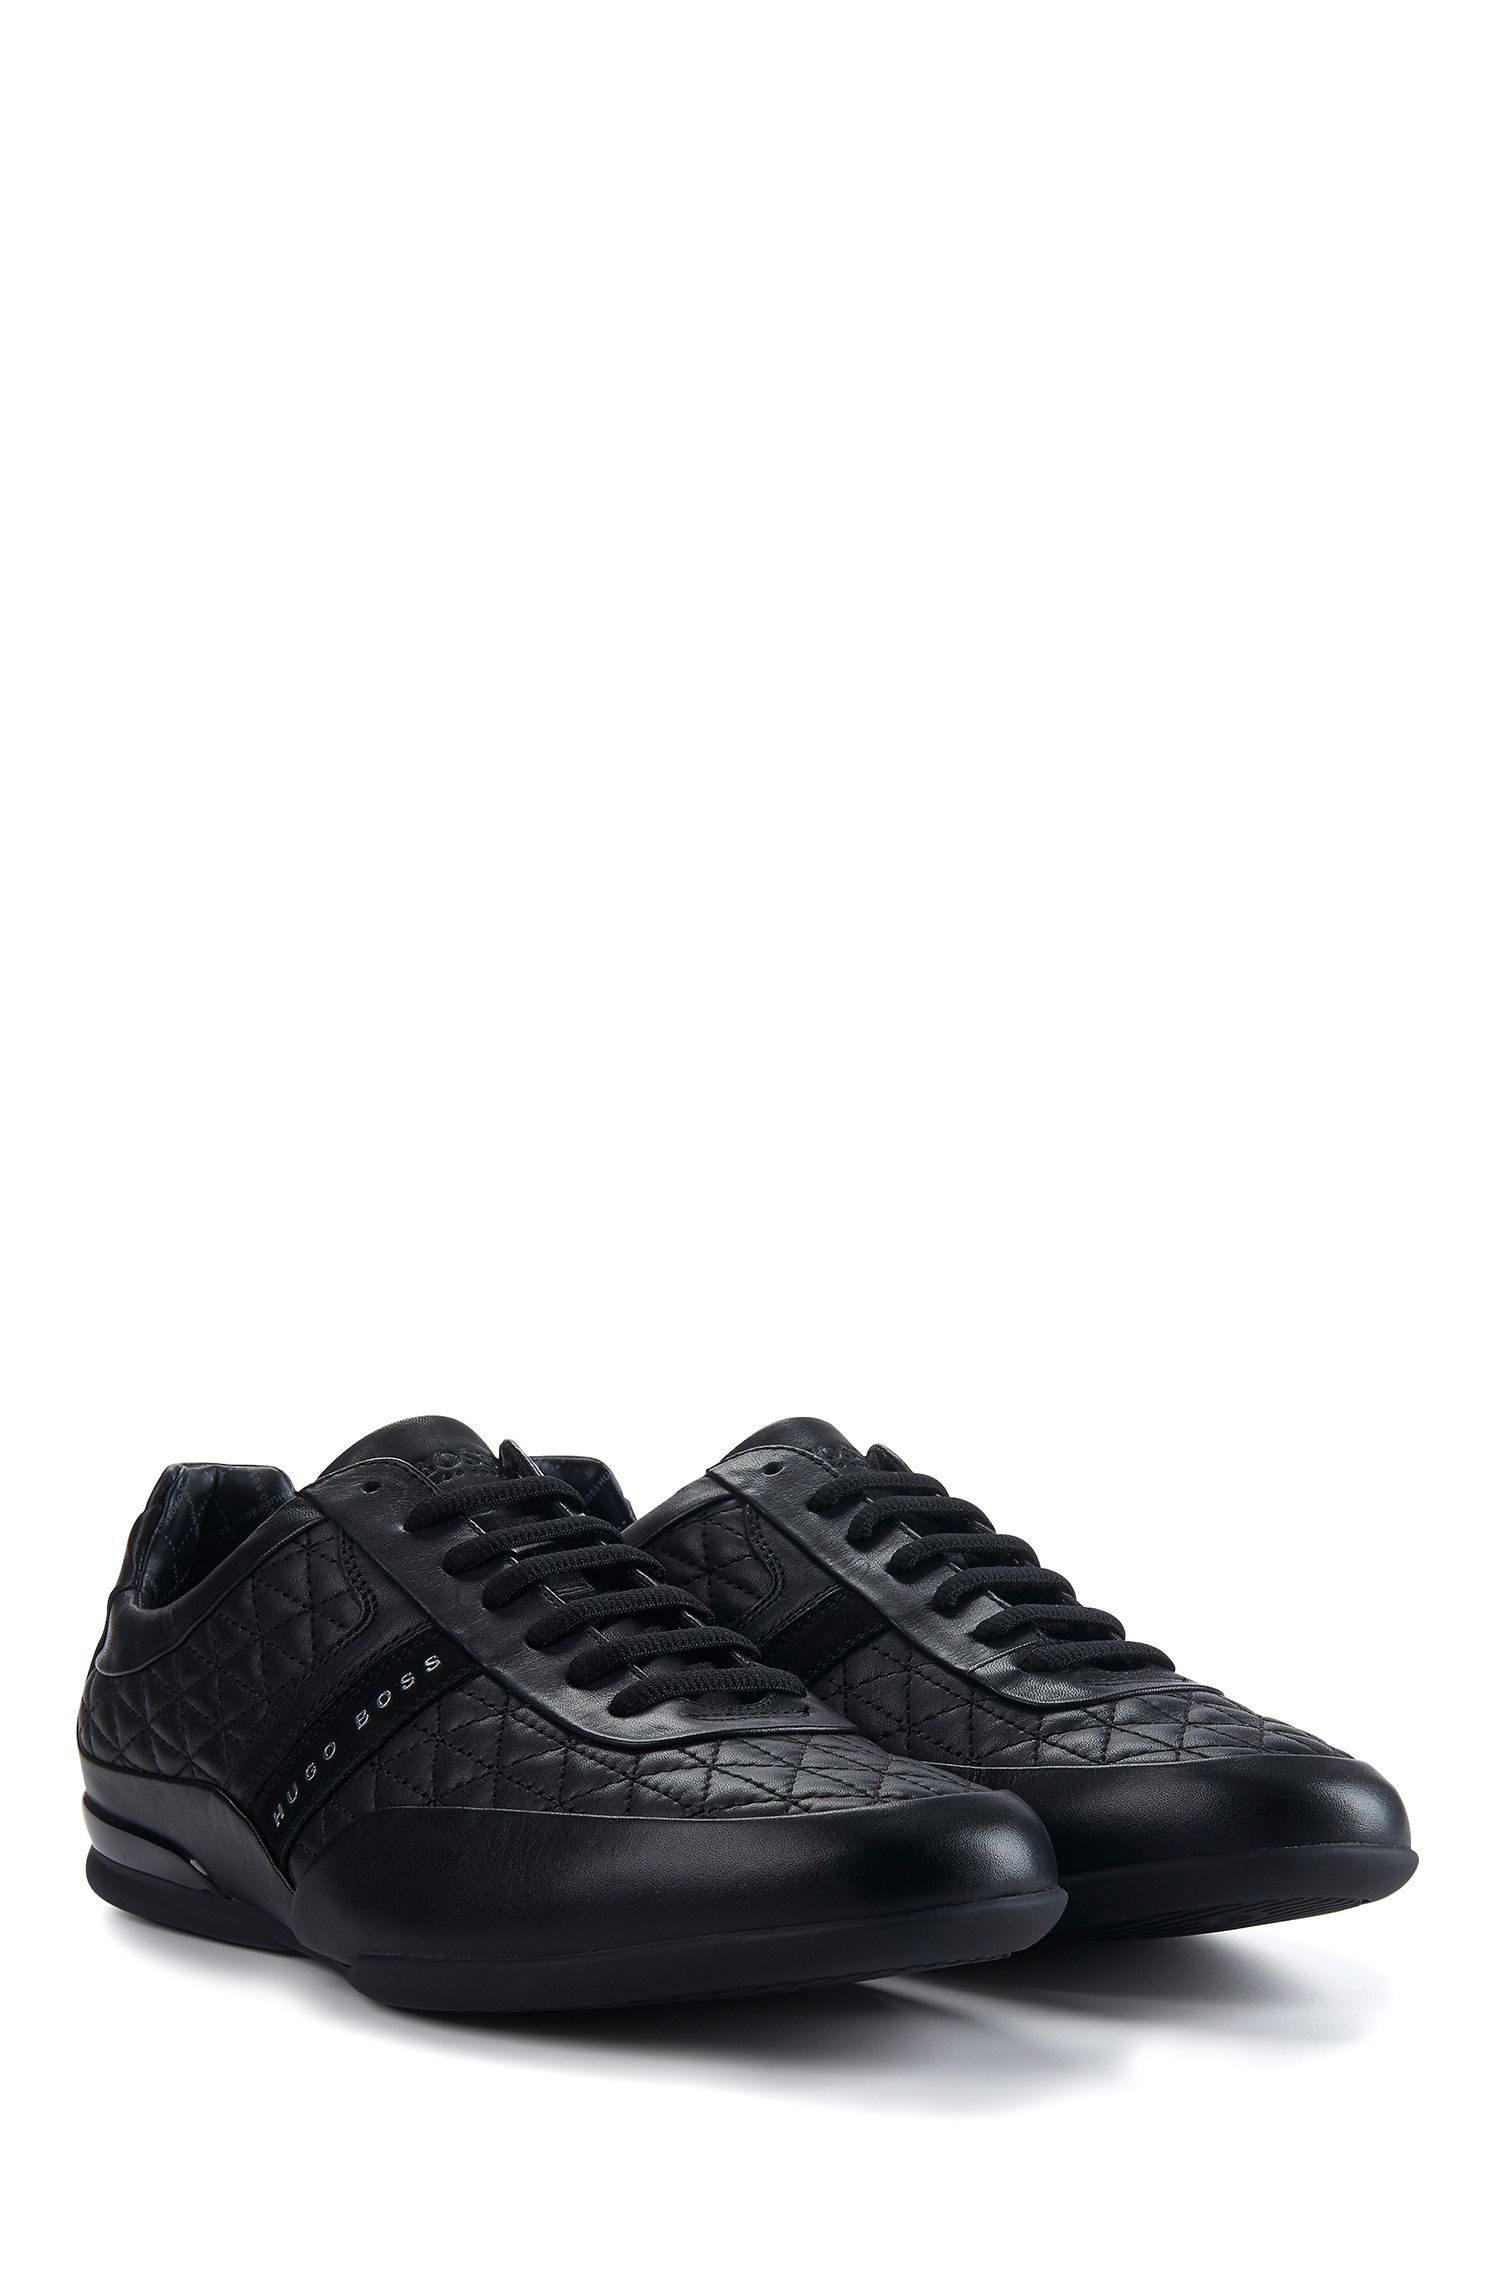 Quilted Leather Sneaker | Space Lowp Nyme, Black